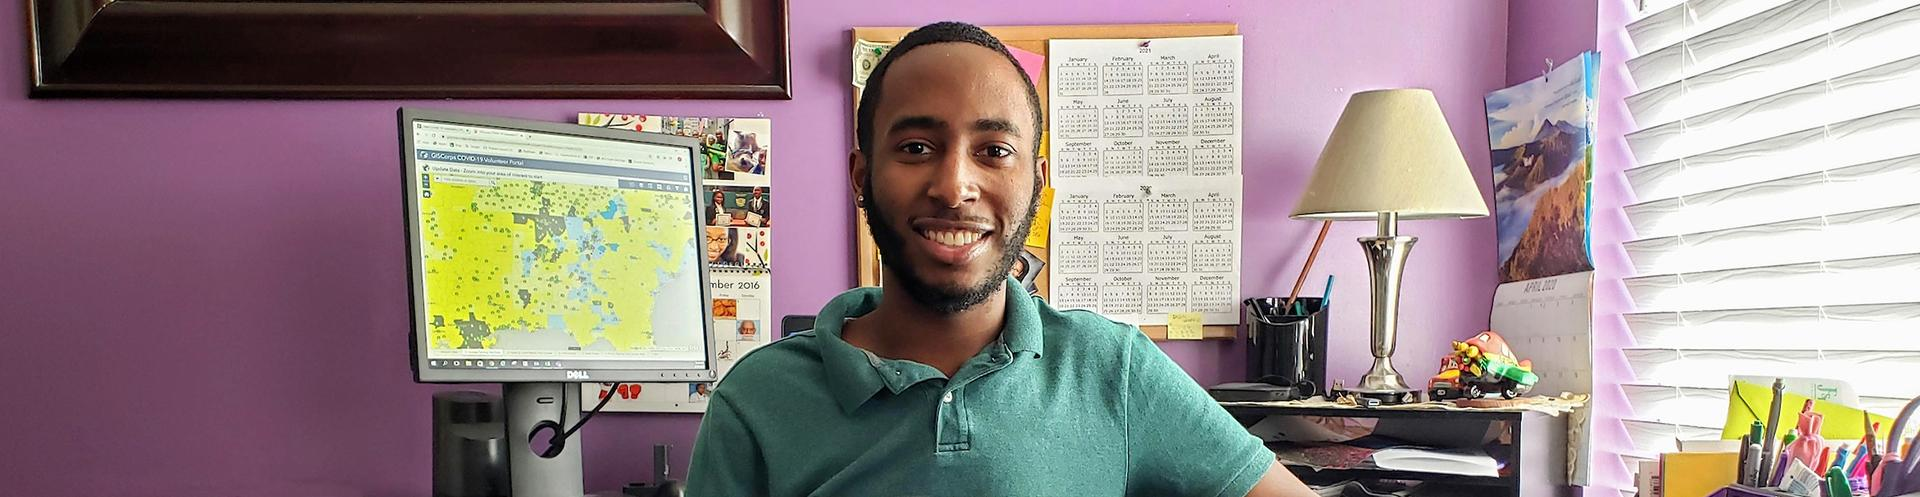 Honors Student Dedicated to Helping Others Earns Scholarship